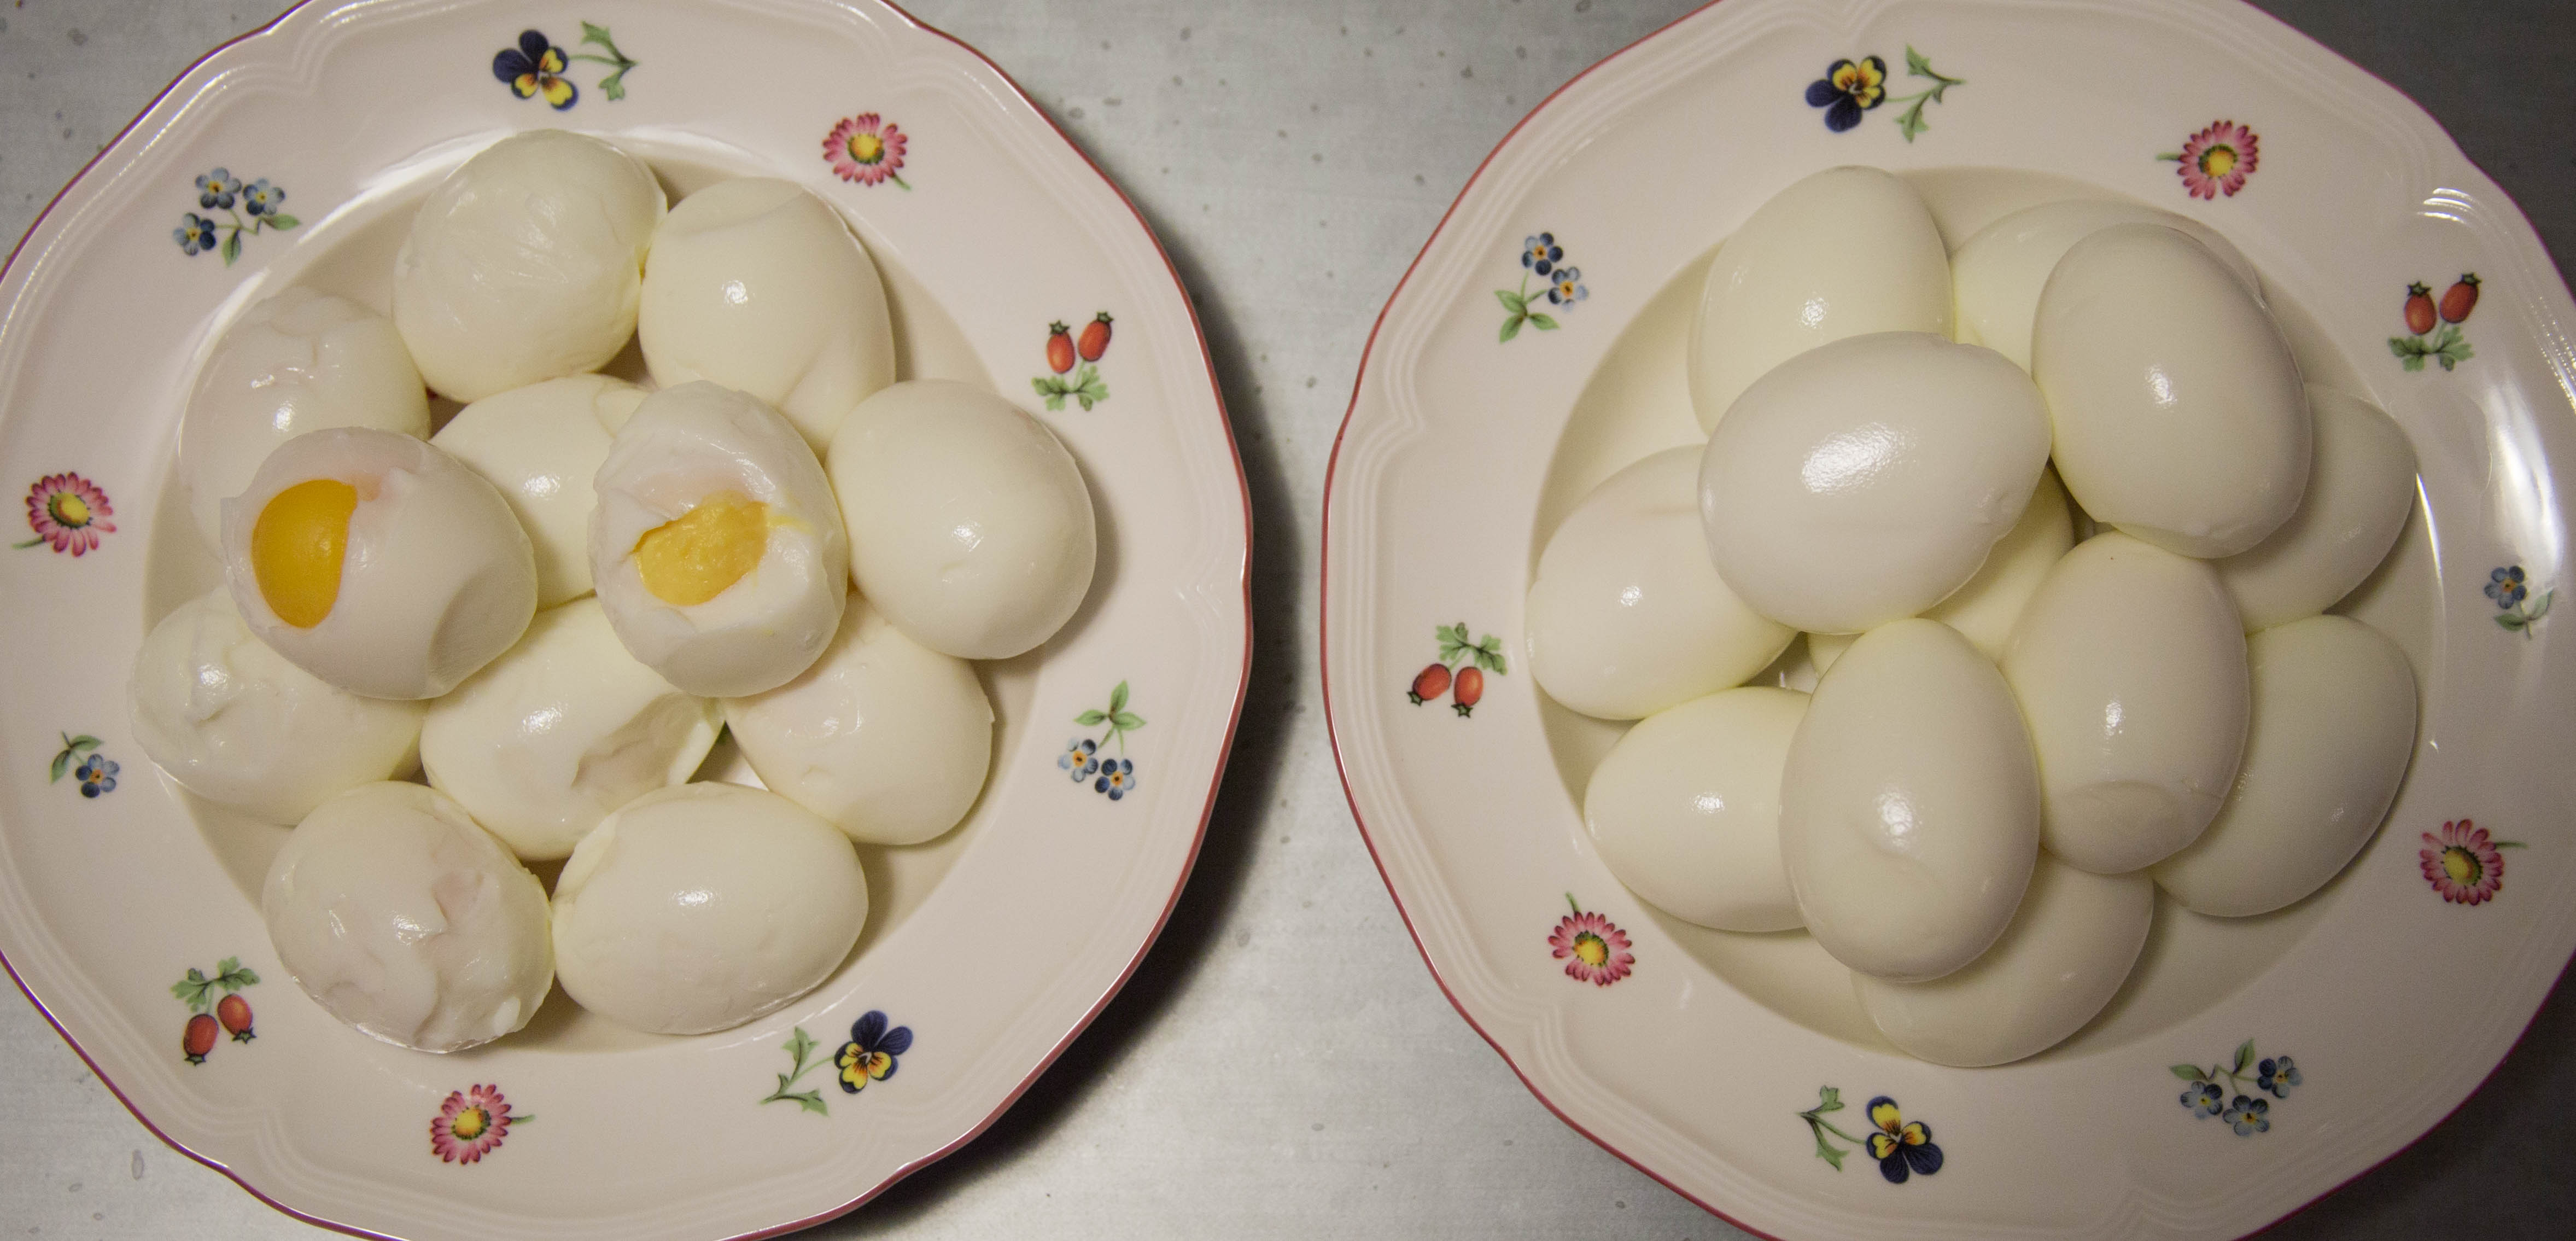 eggs_side_by_side